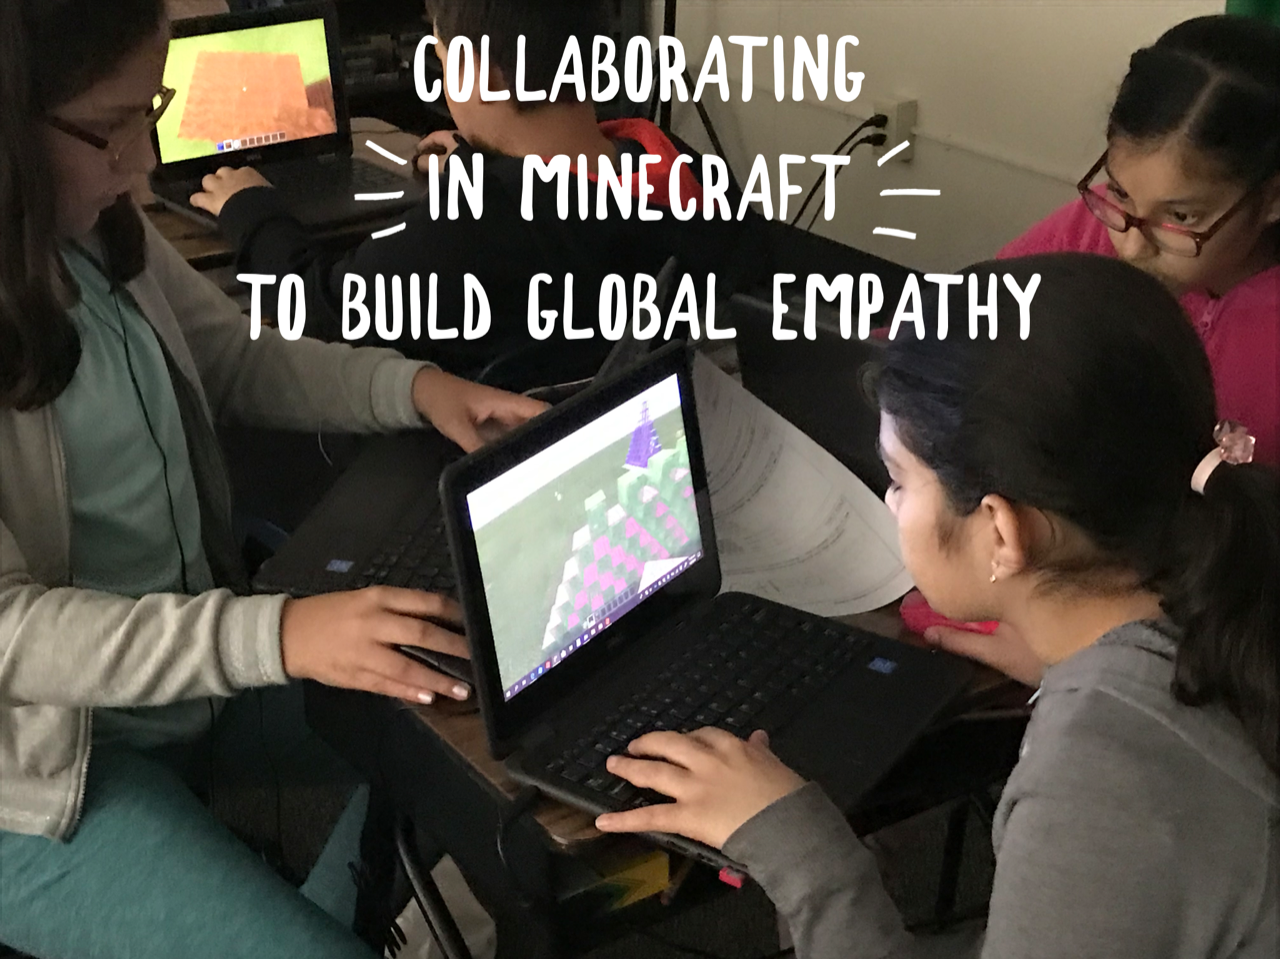 Minecraft and Building Global Empathy | Teacher Geek is Chic!